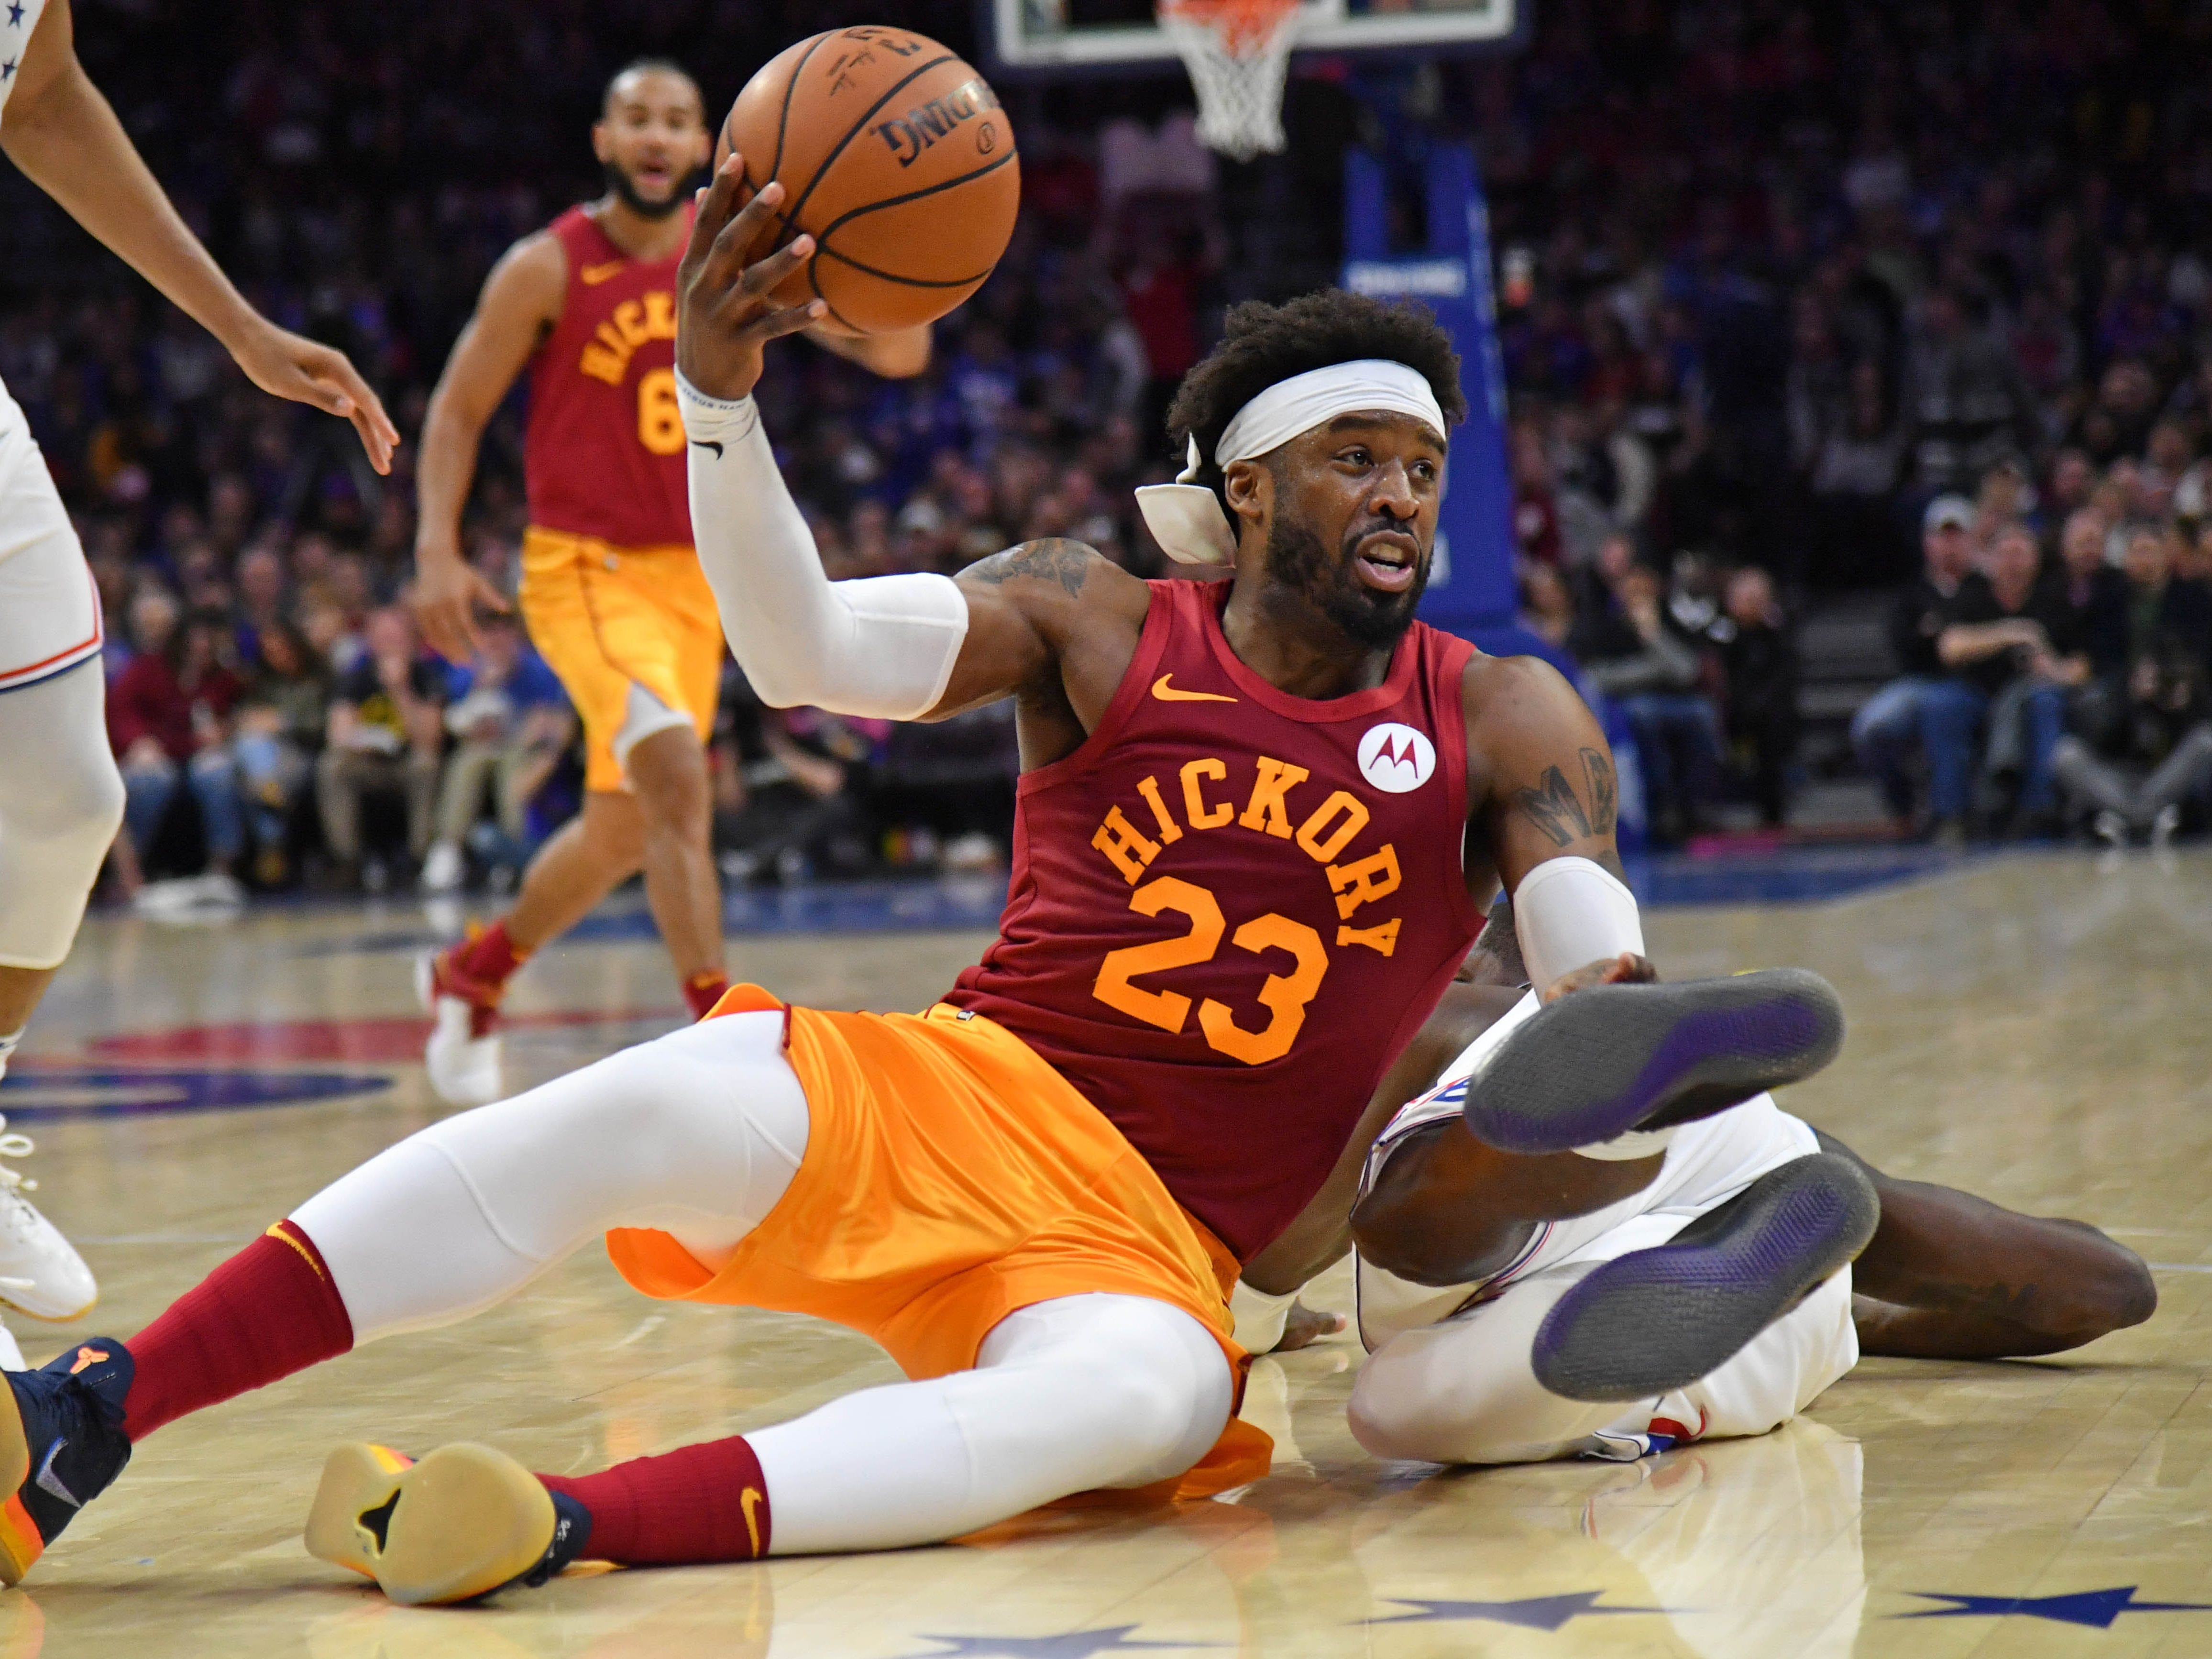 Mar 10, 2019; Philadelphia, PA, USA; Indiana Pacers guard Wesley Matthews (23) passes the ball against the Philadelphia 76ers during the second quarter at Wells Fargo Center.